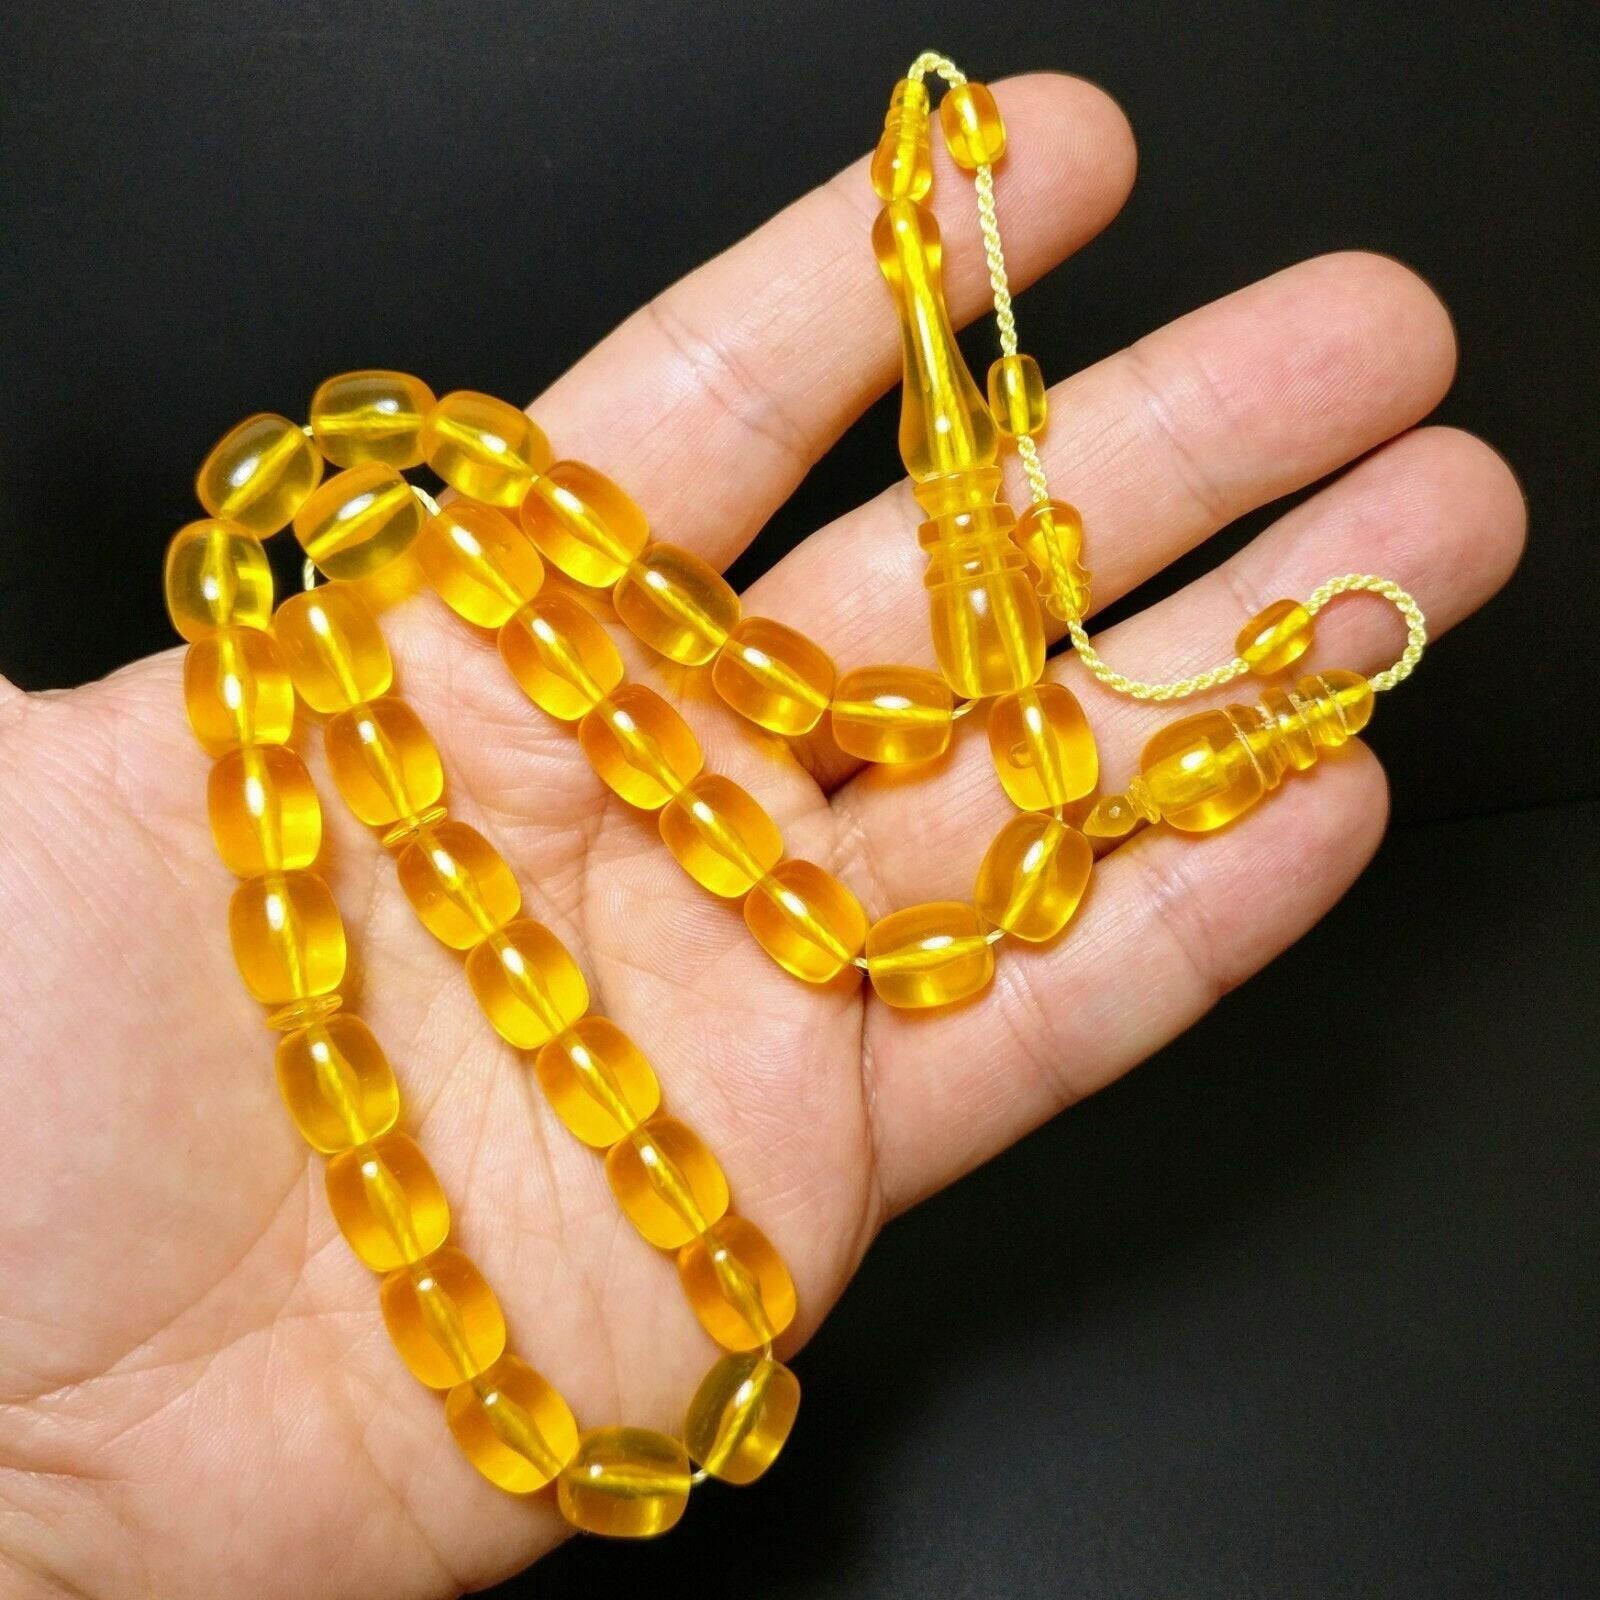 New Stylish Big Yellow Prayer Beads Tesbih Muslim Rosary Islam Tasbih Tasbeeh Turkish Misbaha Subha 320